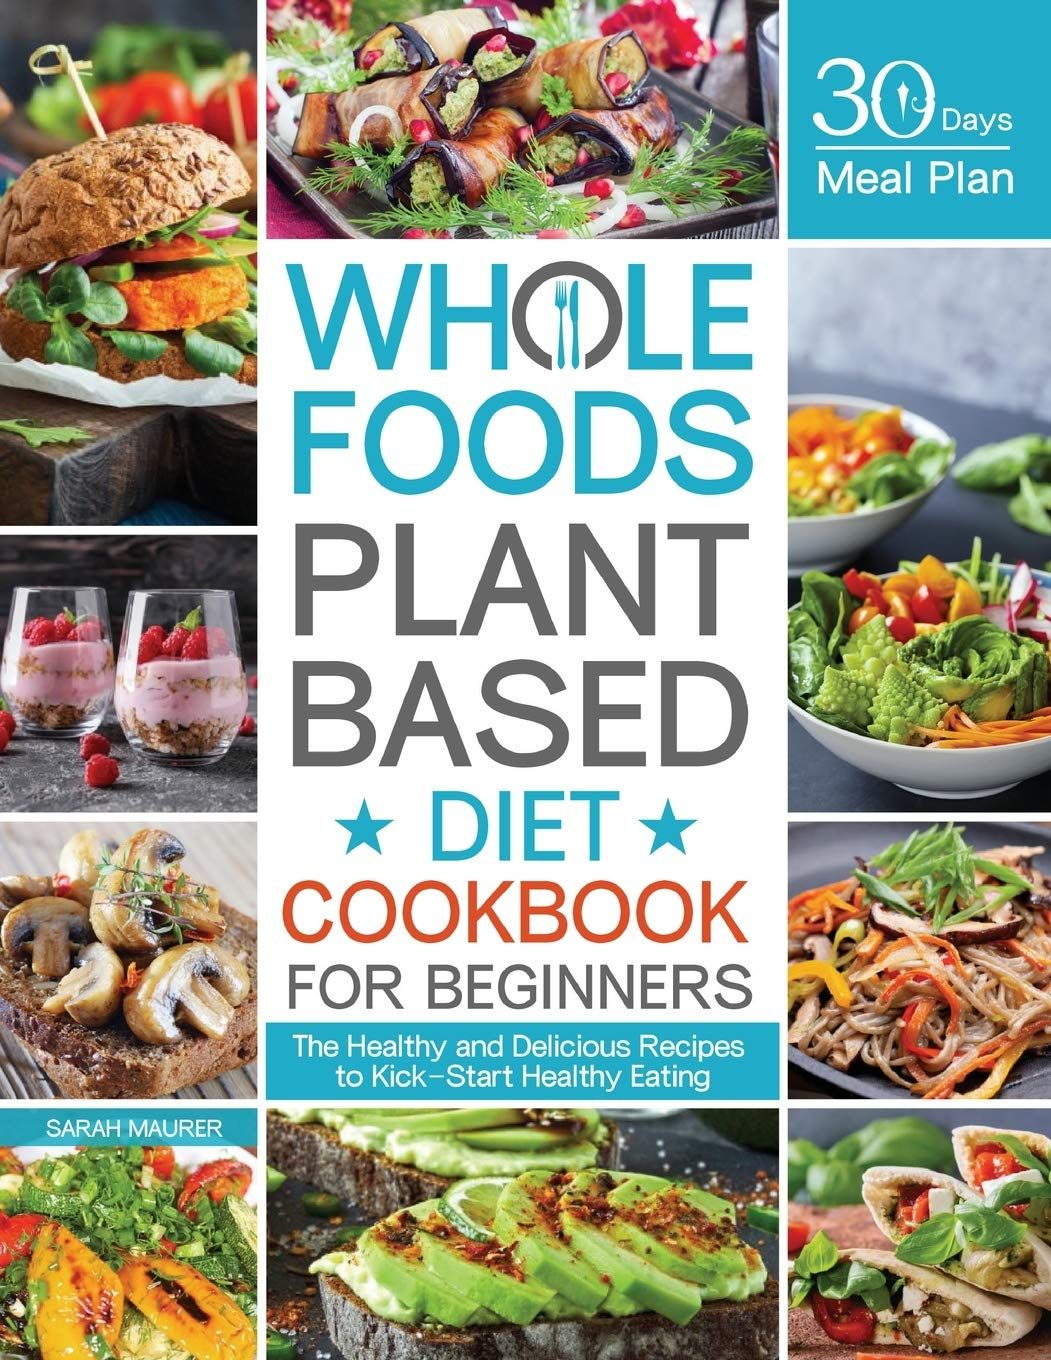 Whole Foods Plant Based Diet Cookbook For Beginners The Healthy And Delicious Recipes With 30 Days Meal Plan To Kick Start Healthy Eating Cookbooks For Beginners Whole Food Recipes Plant Based Diet